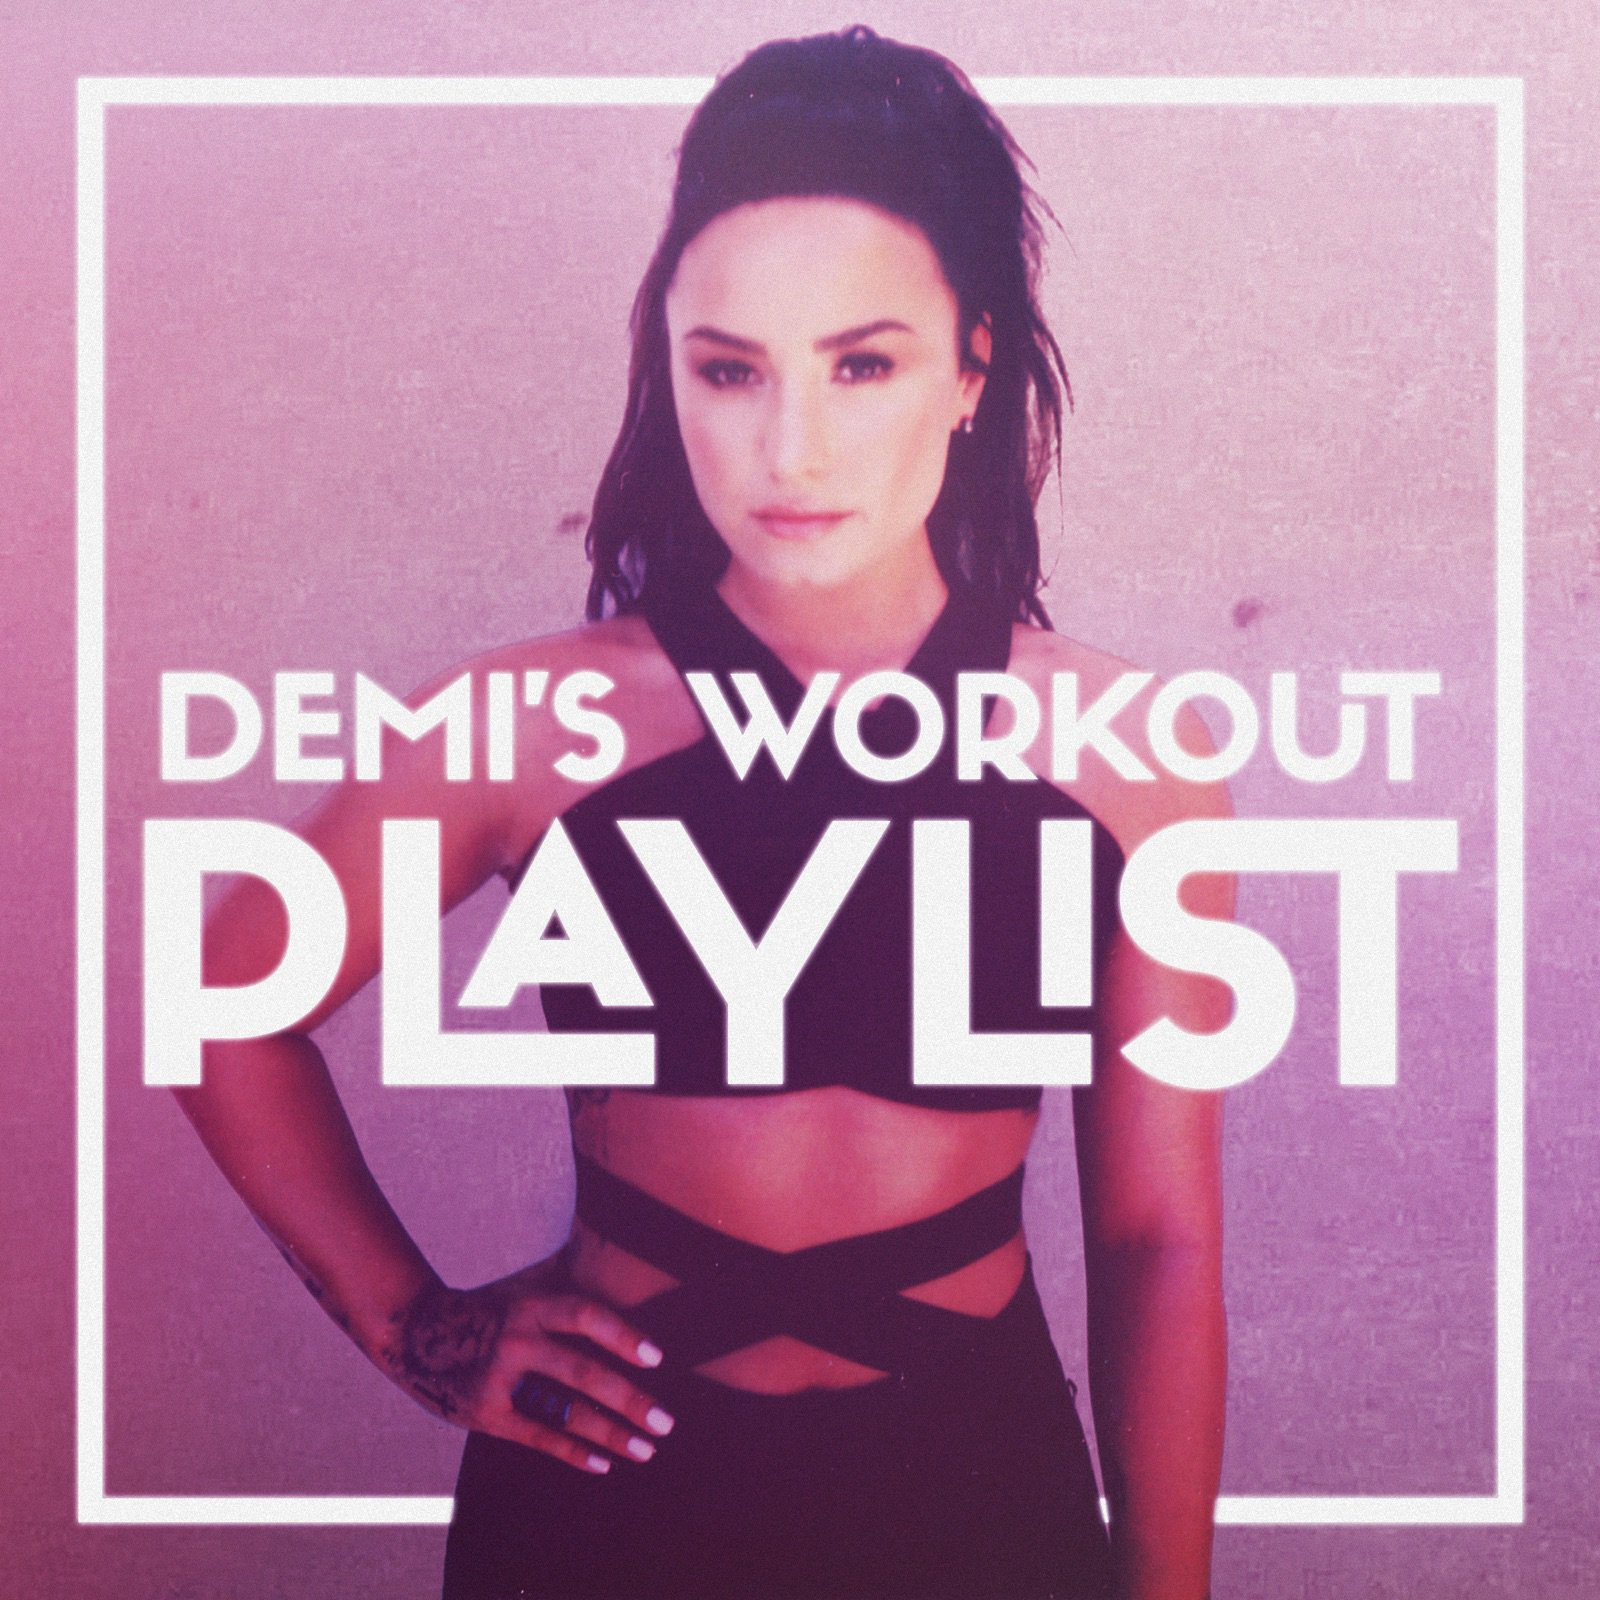 Workout playlist? ☑️ @Spotify https://t.co/Zg6eTpHXpg https://t.co/JiwsLwxhDd